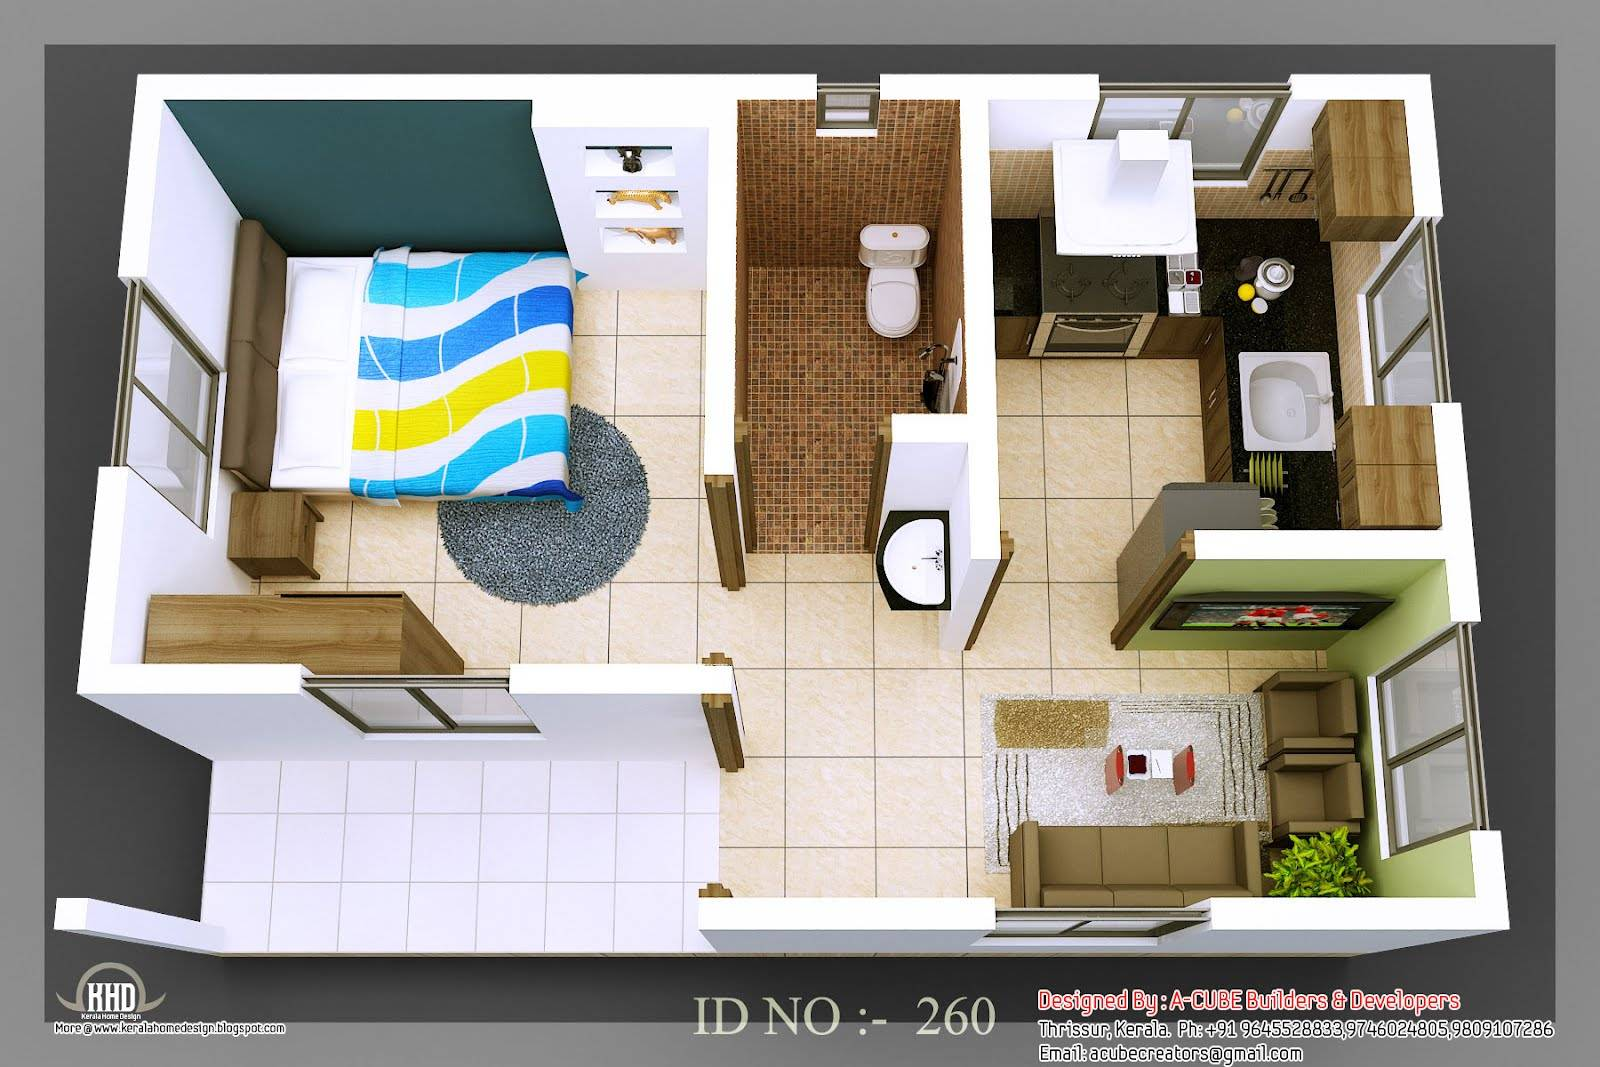 20 Inspiring Small House Plans With Pictures Photo House Plans